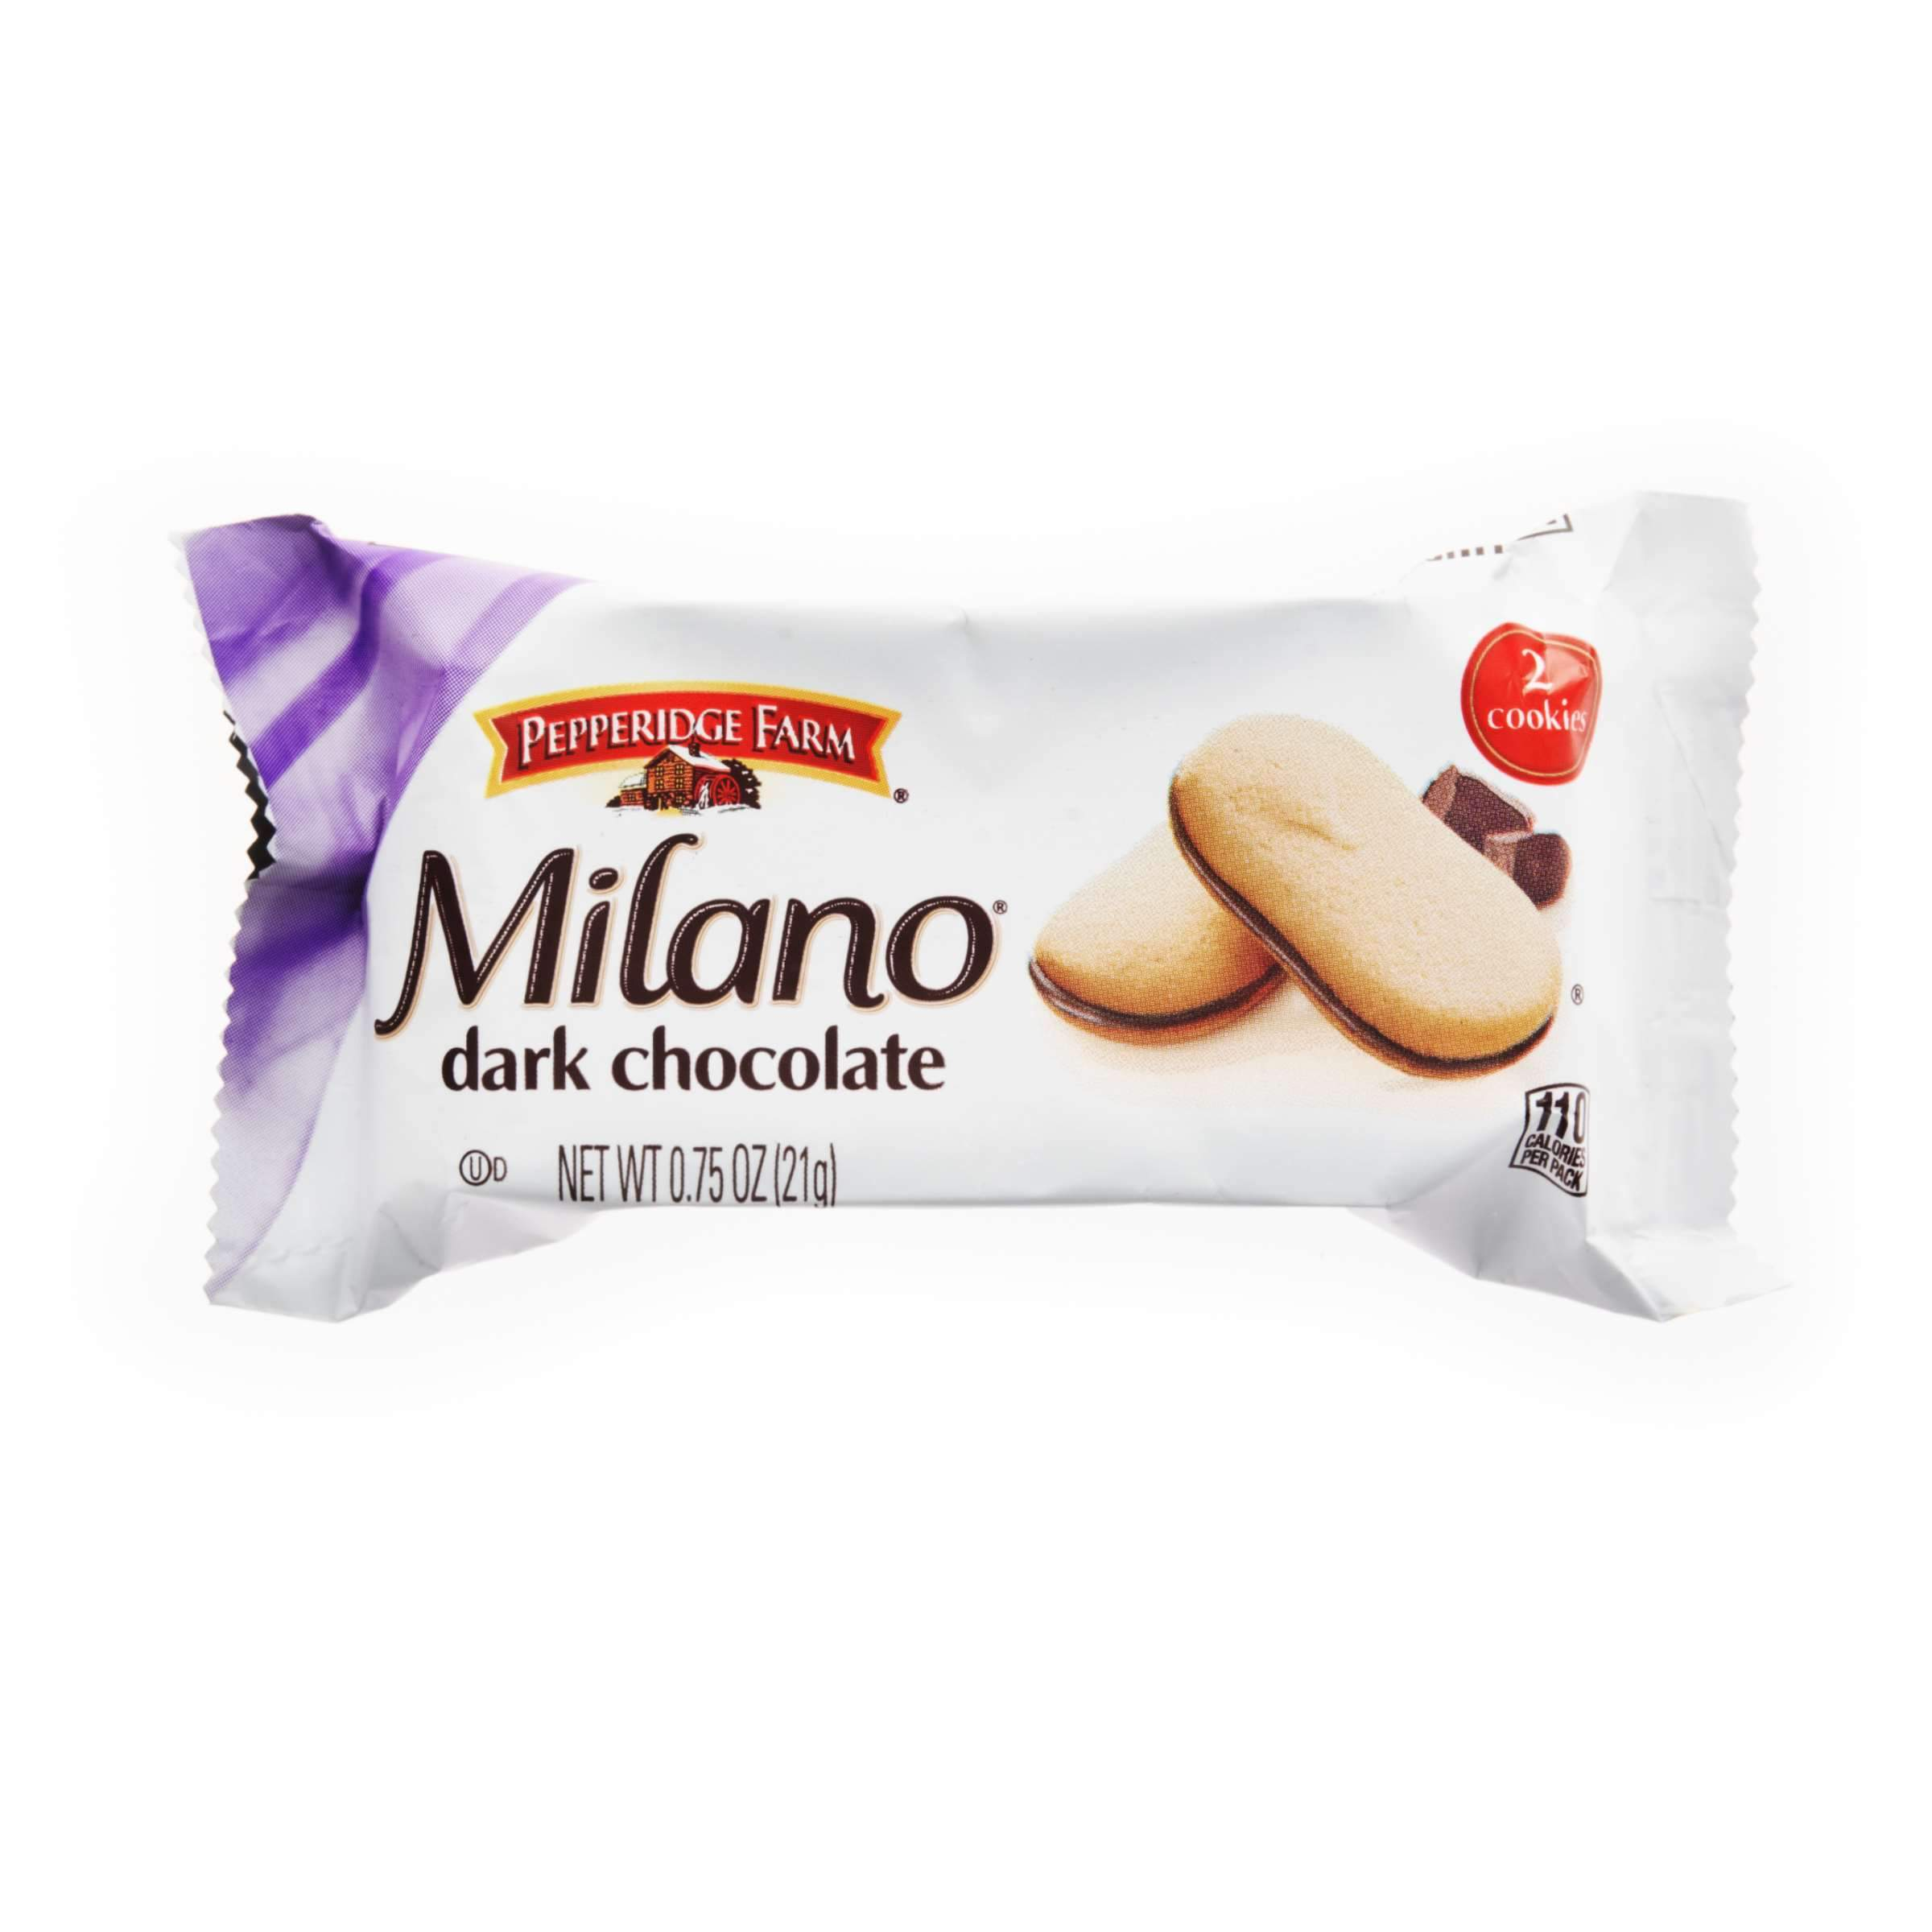 Milano Dark Chocolate Cookies Pepperidge Farms Dark Chocolate 2 Cookies-0.75 Oz